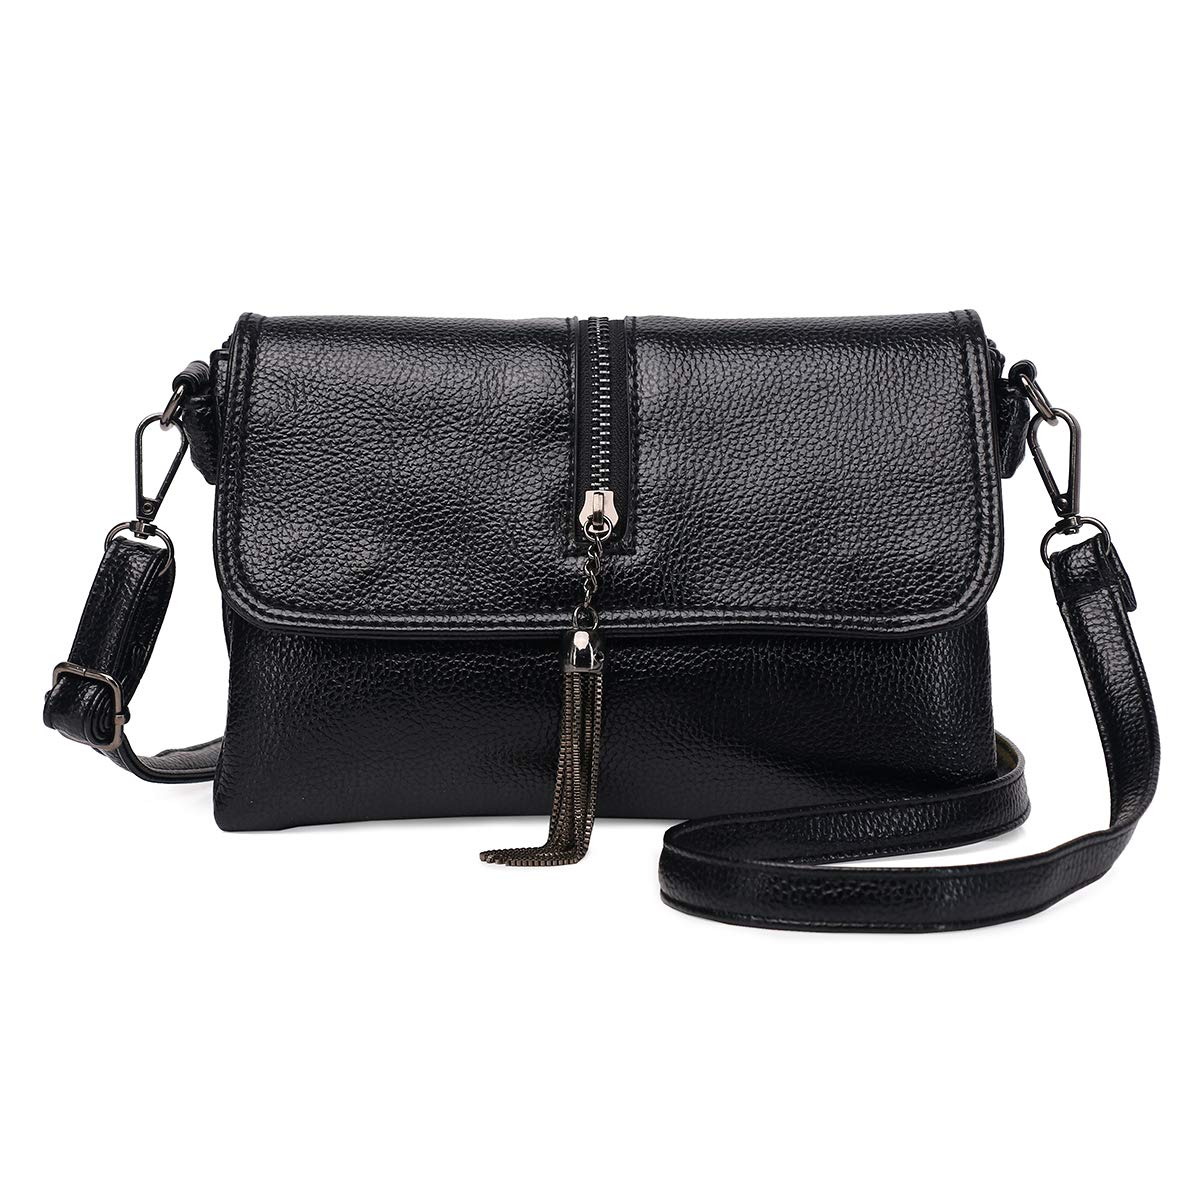 Zg Small Crossbody Purse for Women, 2 Layer Wristlet Cell Phone Clutch Wallet Purse with Shoulder Strap